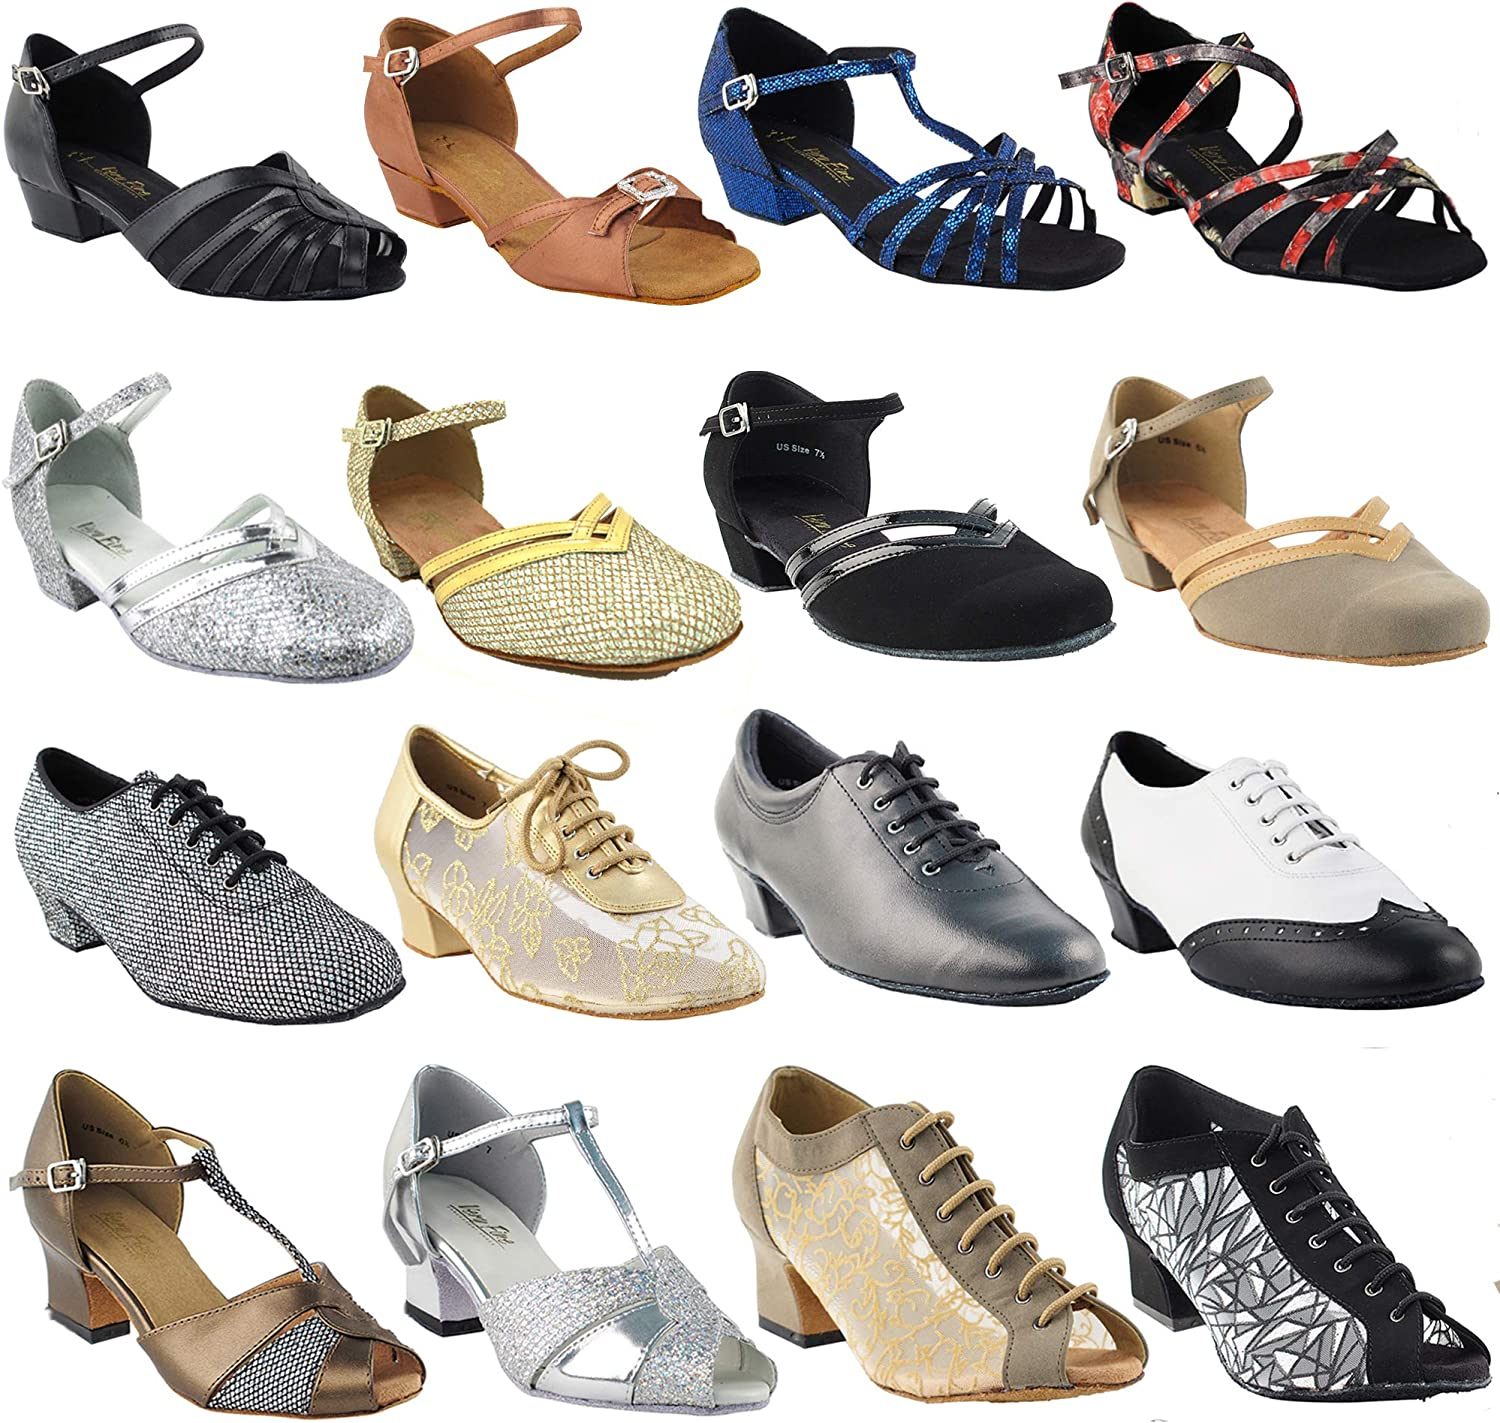 50 Shades Thick Block Heel Dance Shoes for Practice & Teaching: 1